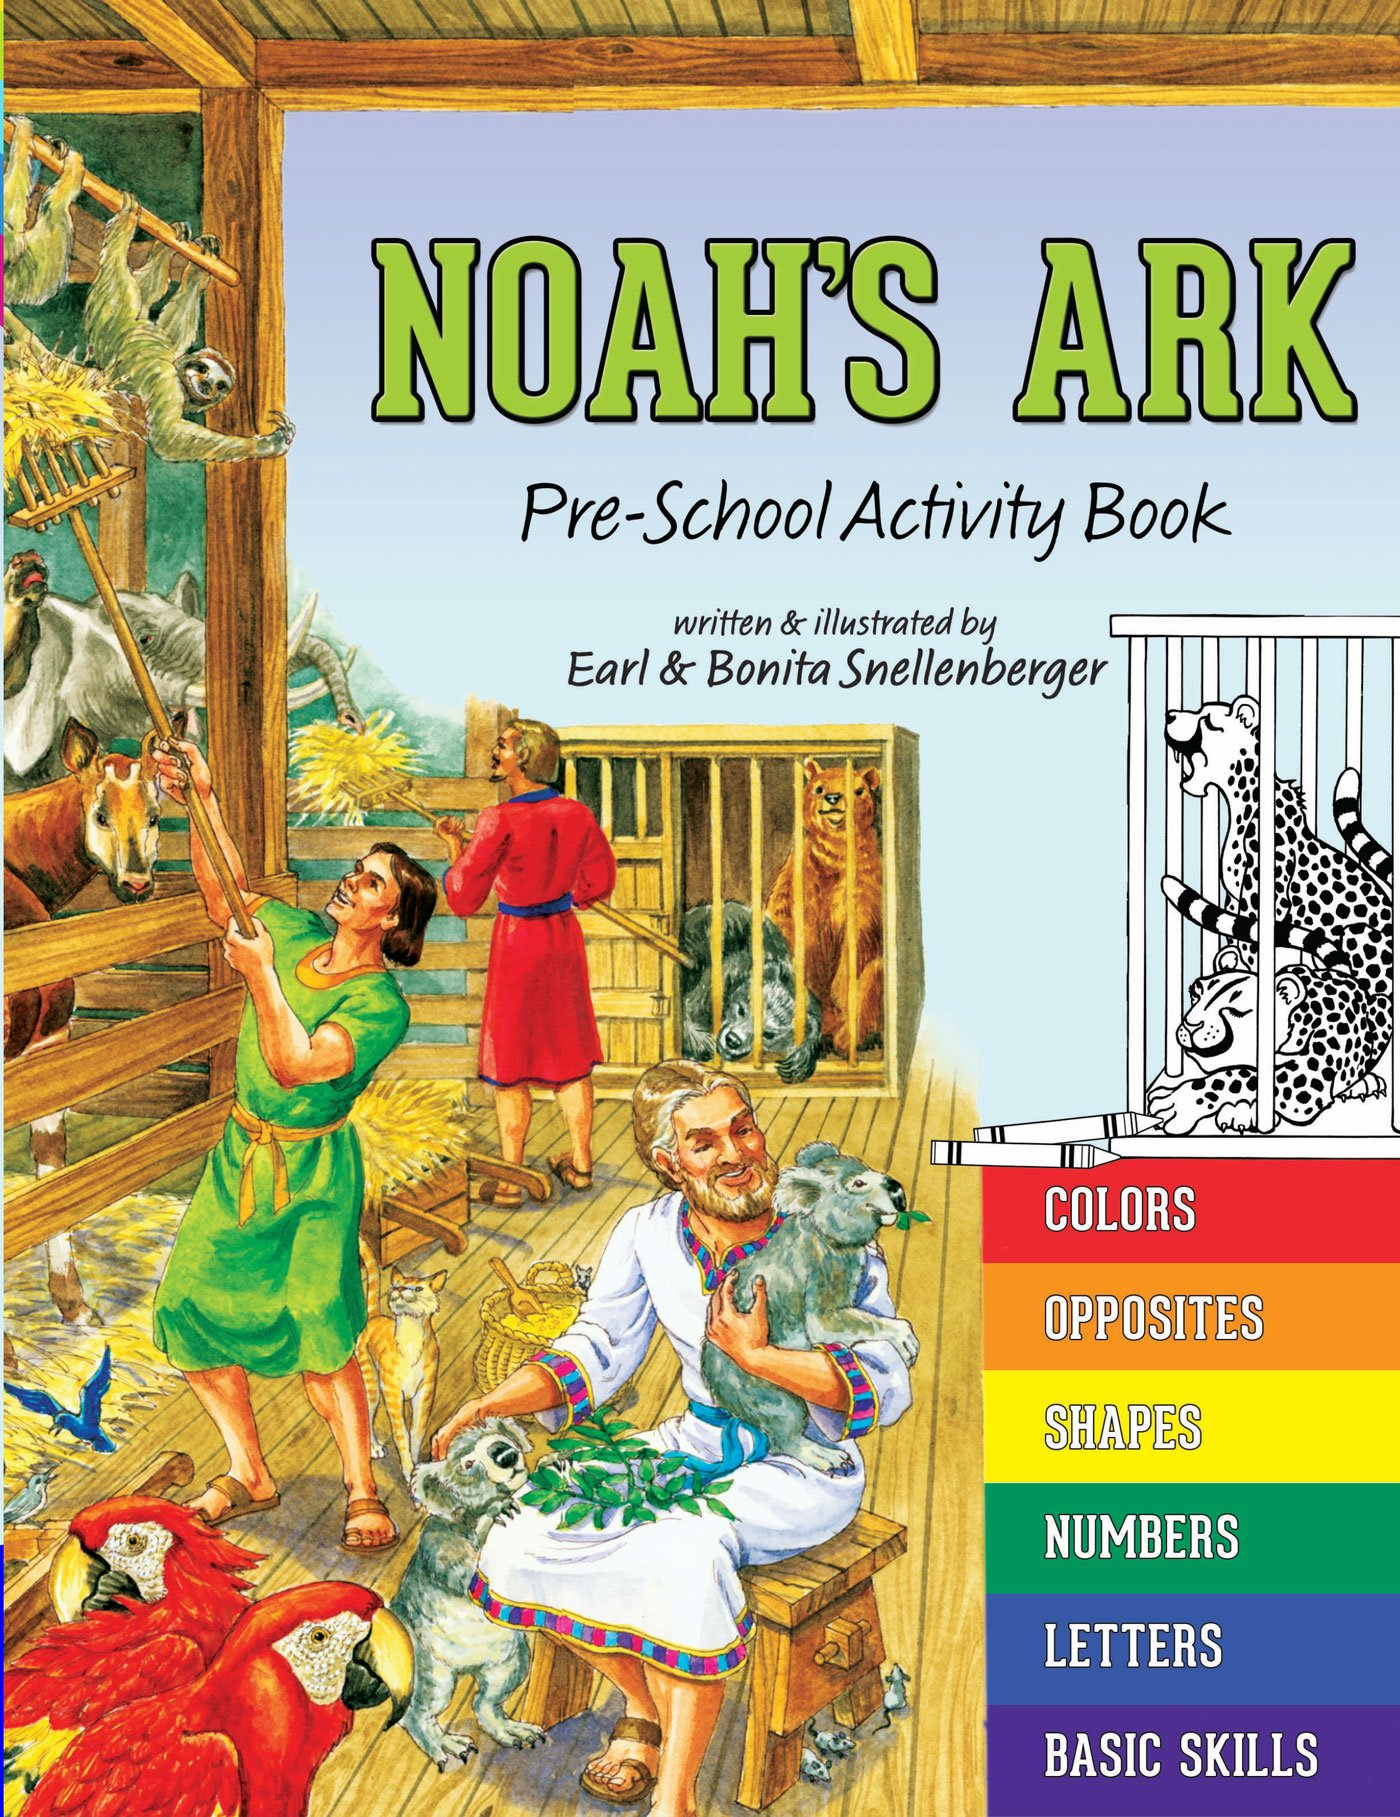 Noah's Ark: Pre-School Activity Book pdf